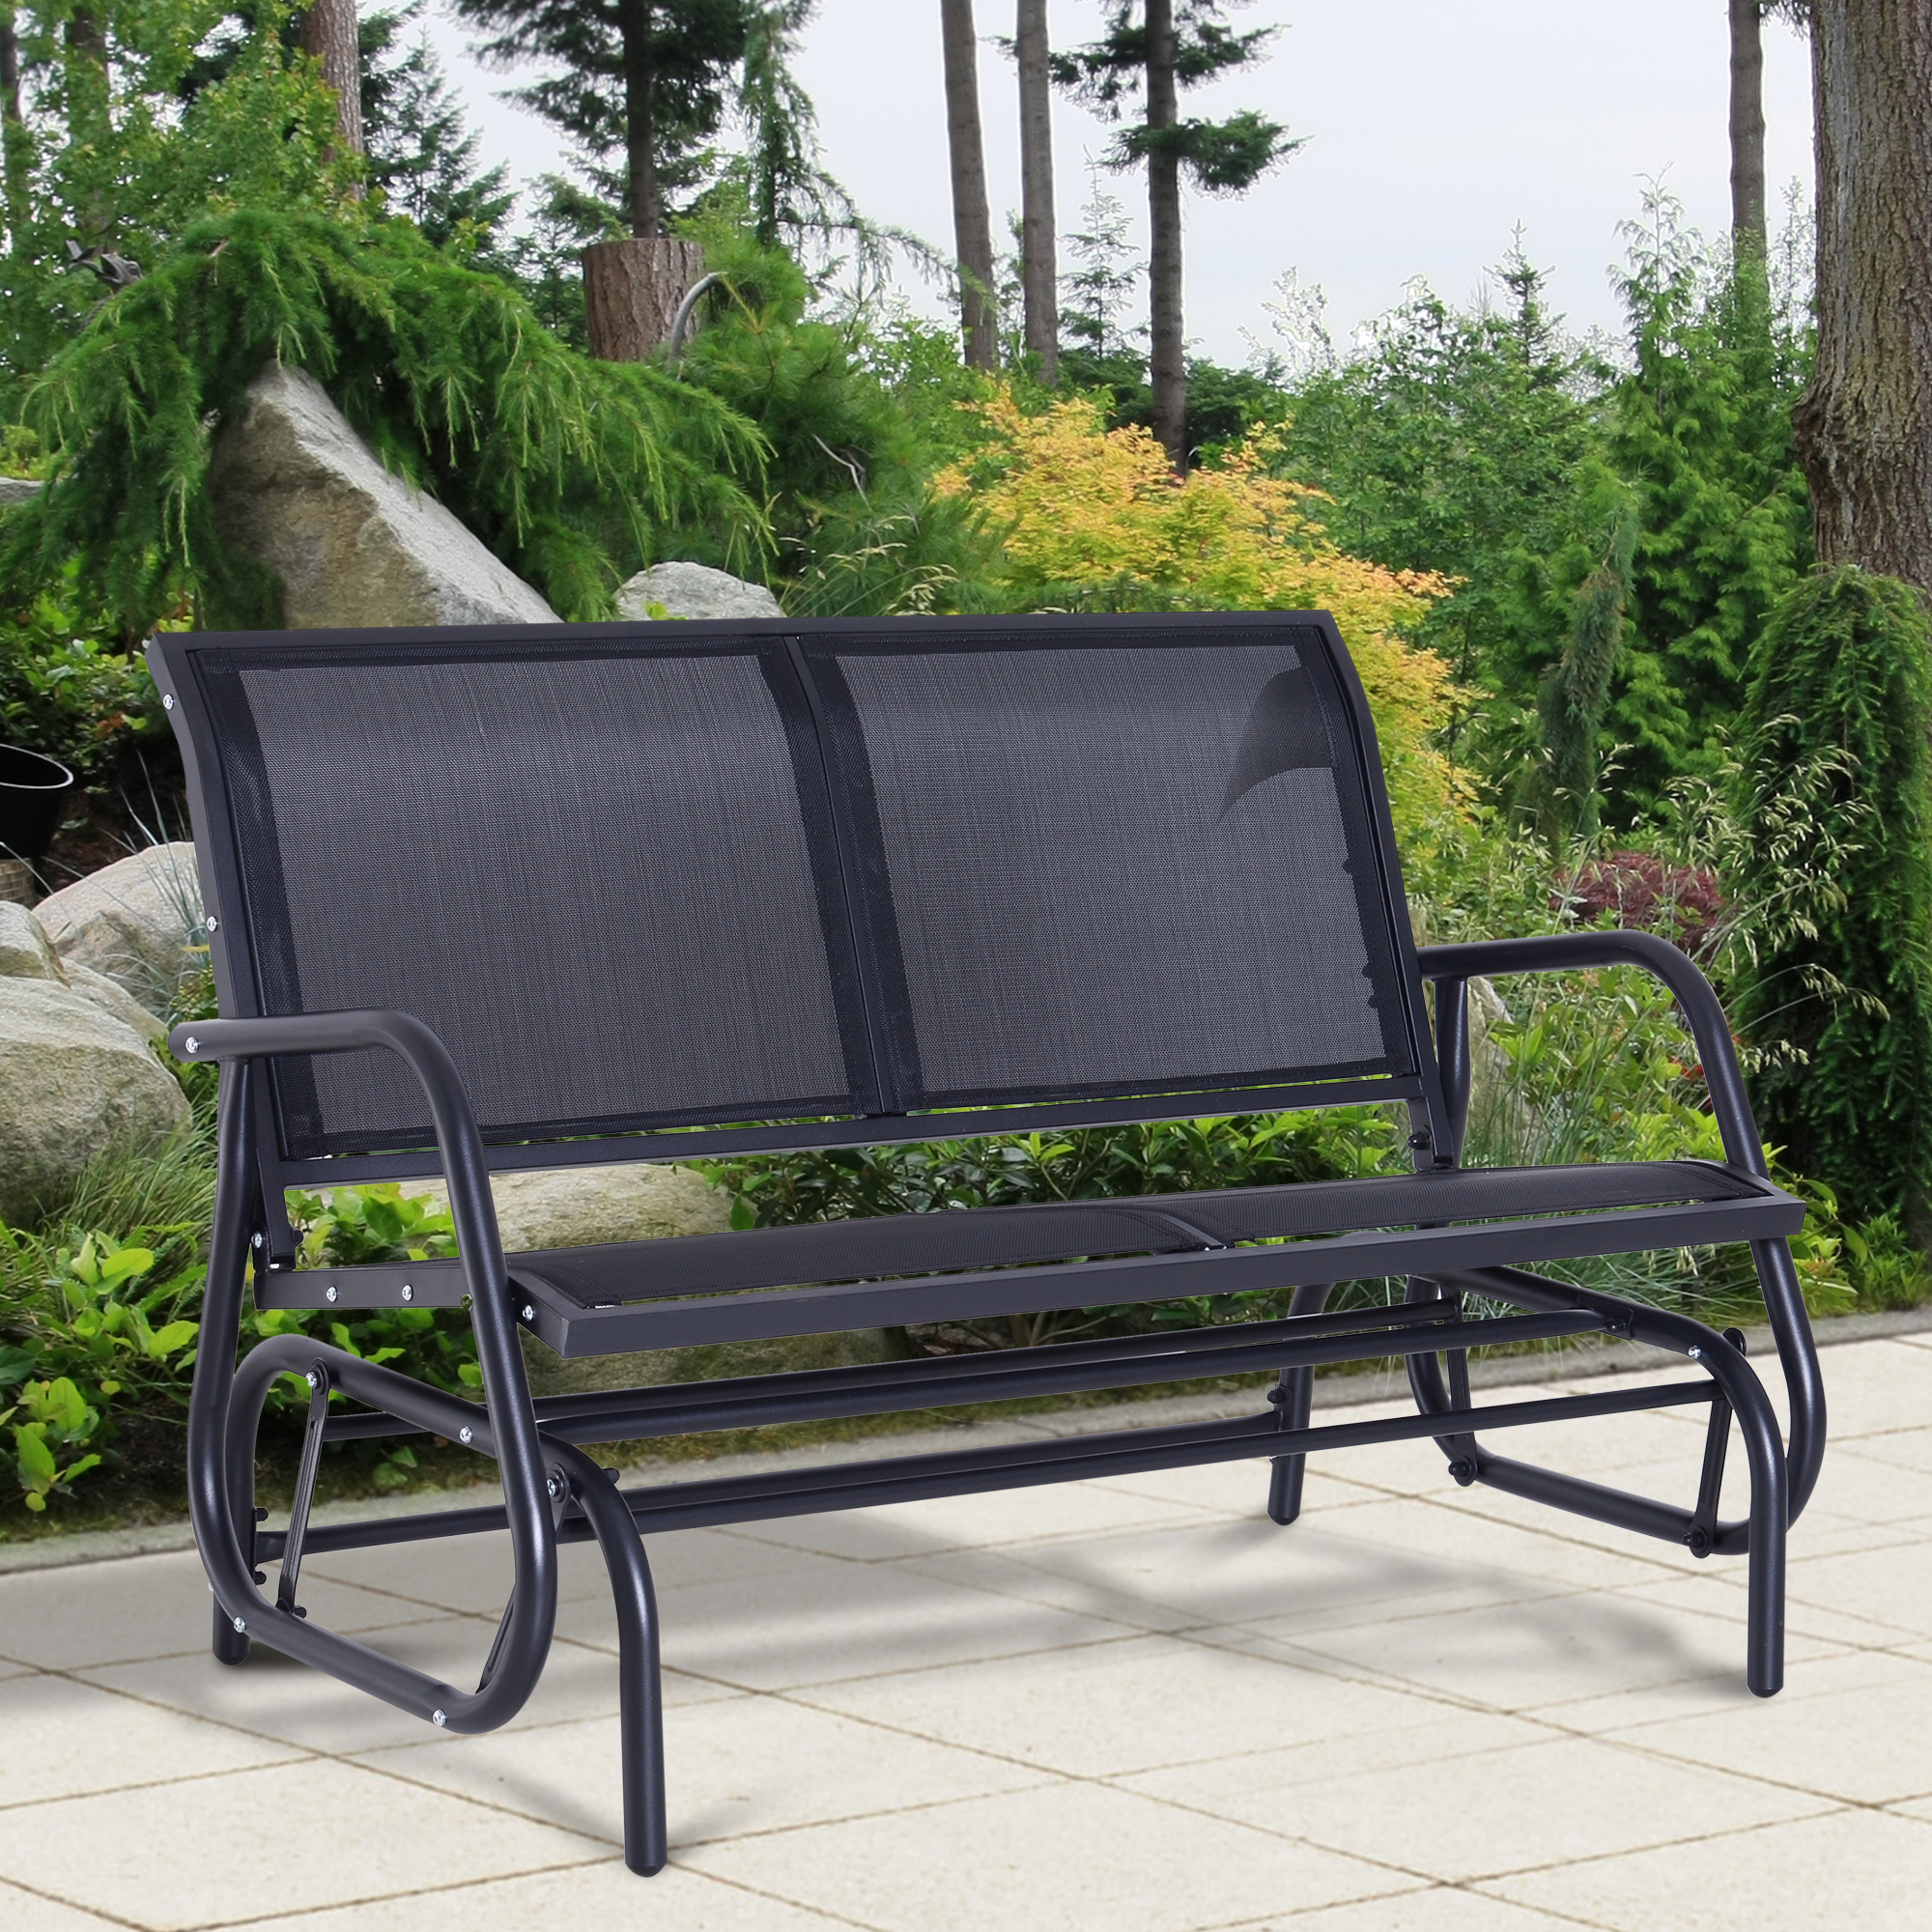 Details About Outsunny Patio Garden Glider Bench 2 Person Double Swing  Chair Rocker Deck Black In Outdoor Patio Swing Glider Bench Chairs (View 23 of 25)